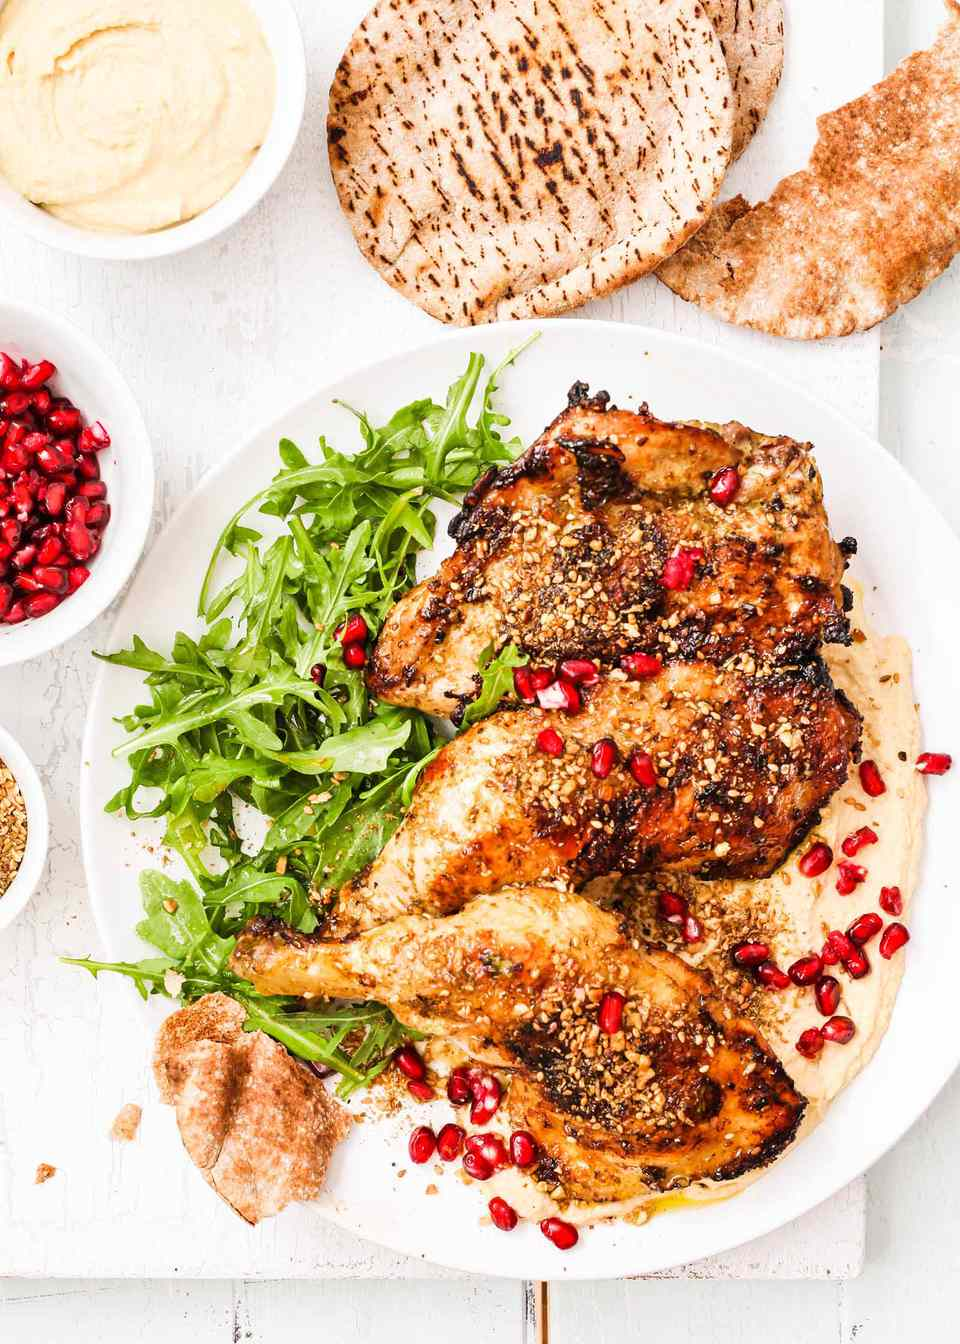 Chicken on the Grill with Dukkah Spice